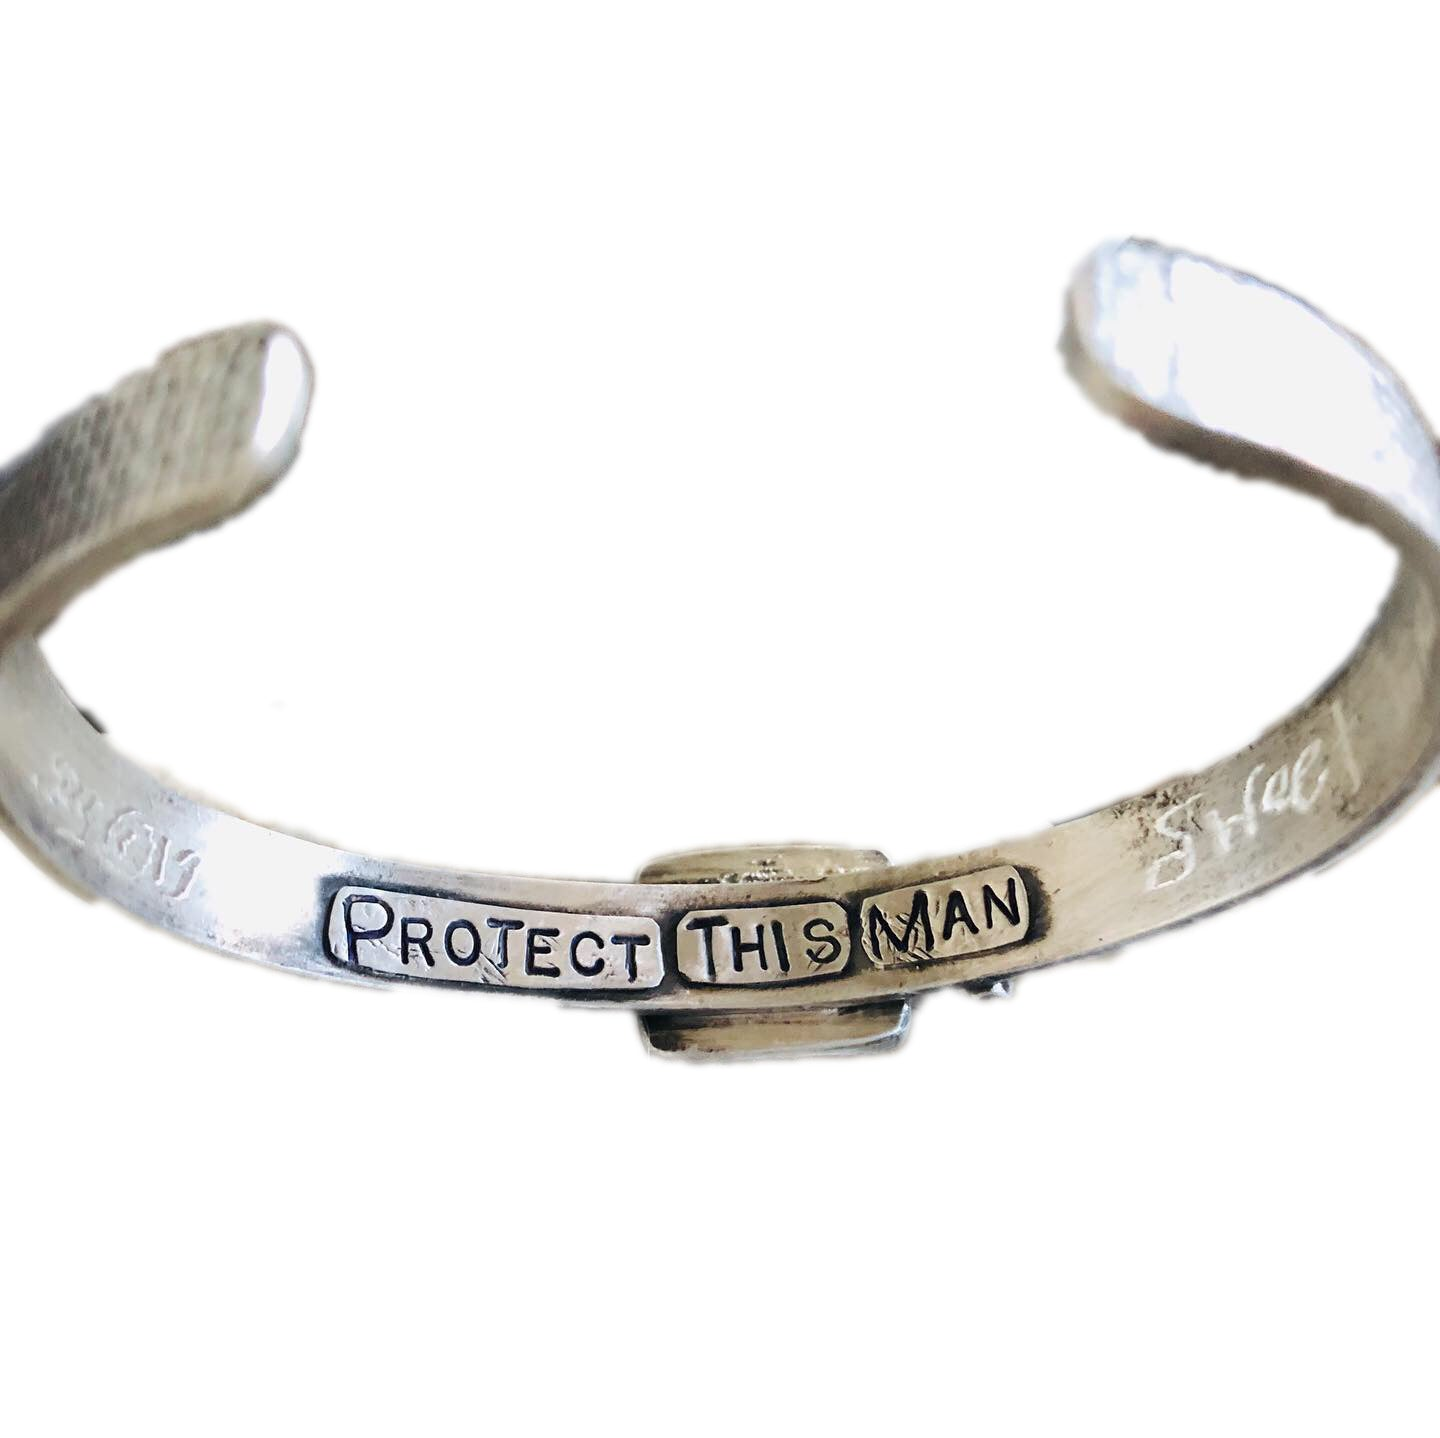 Art As Prayer Cuff Bracelet